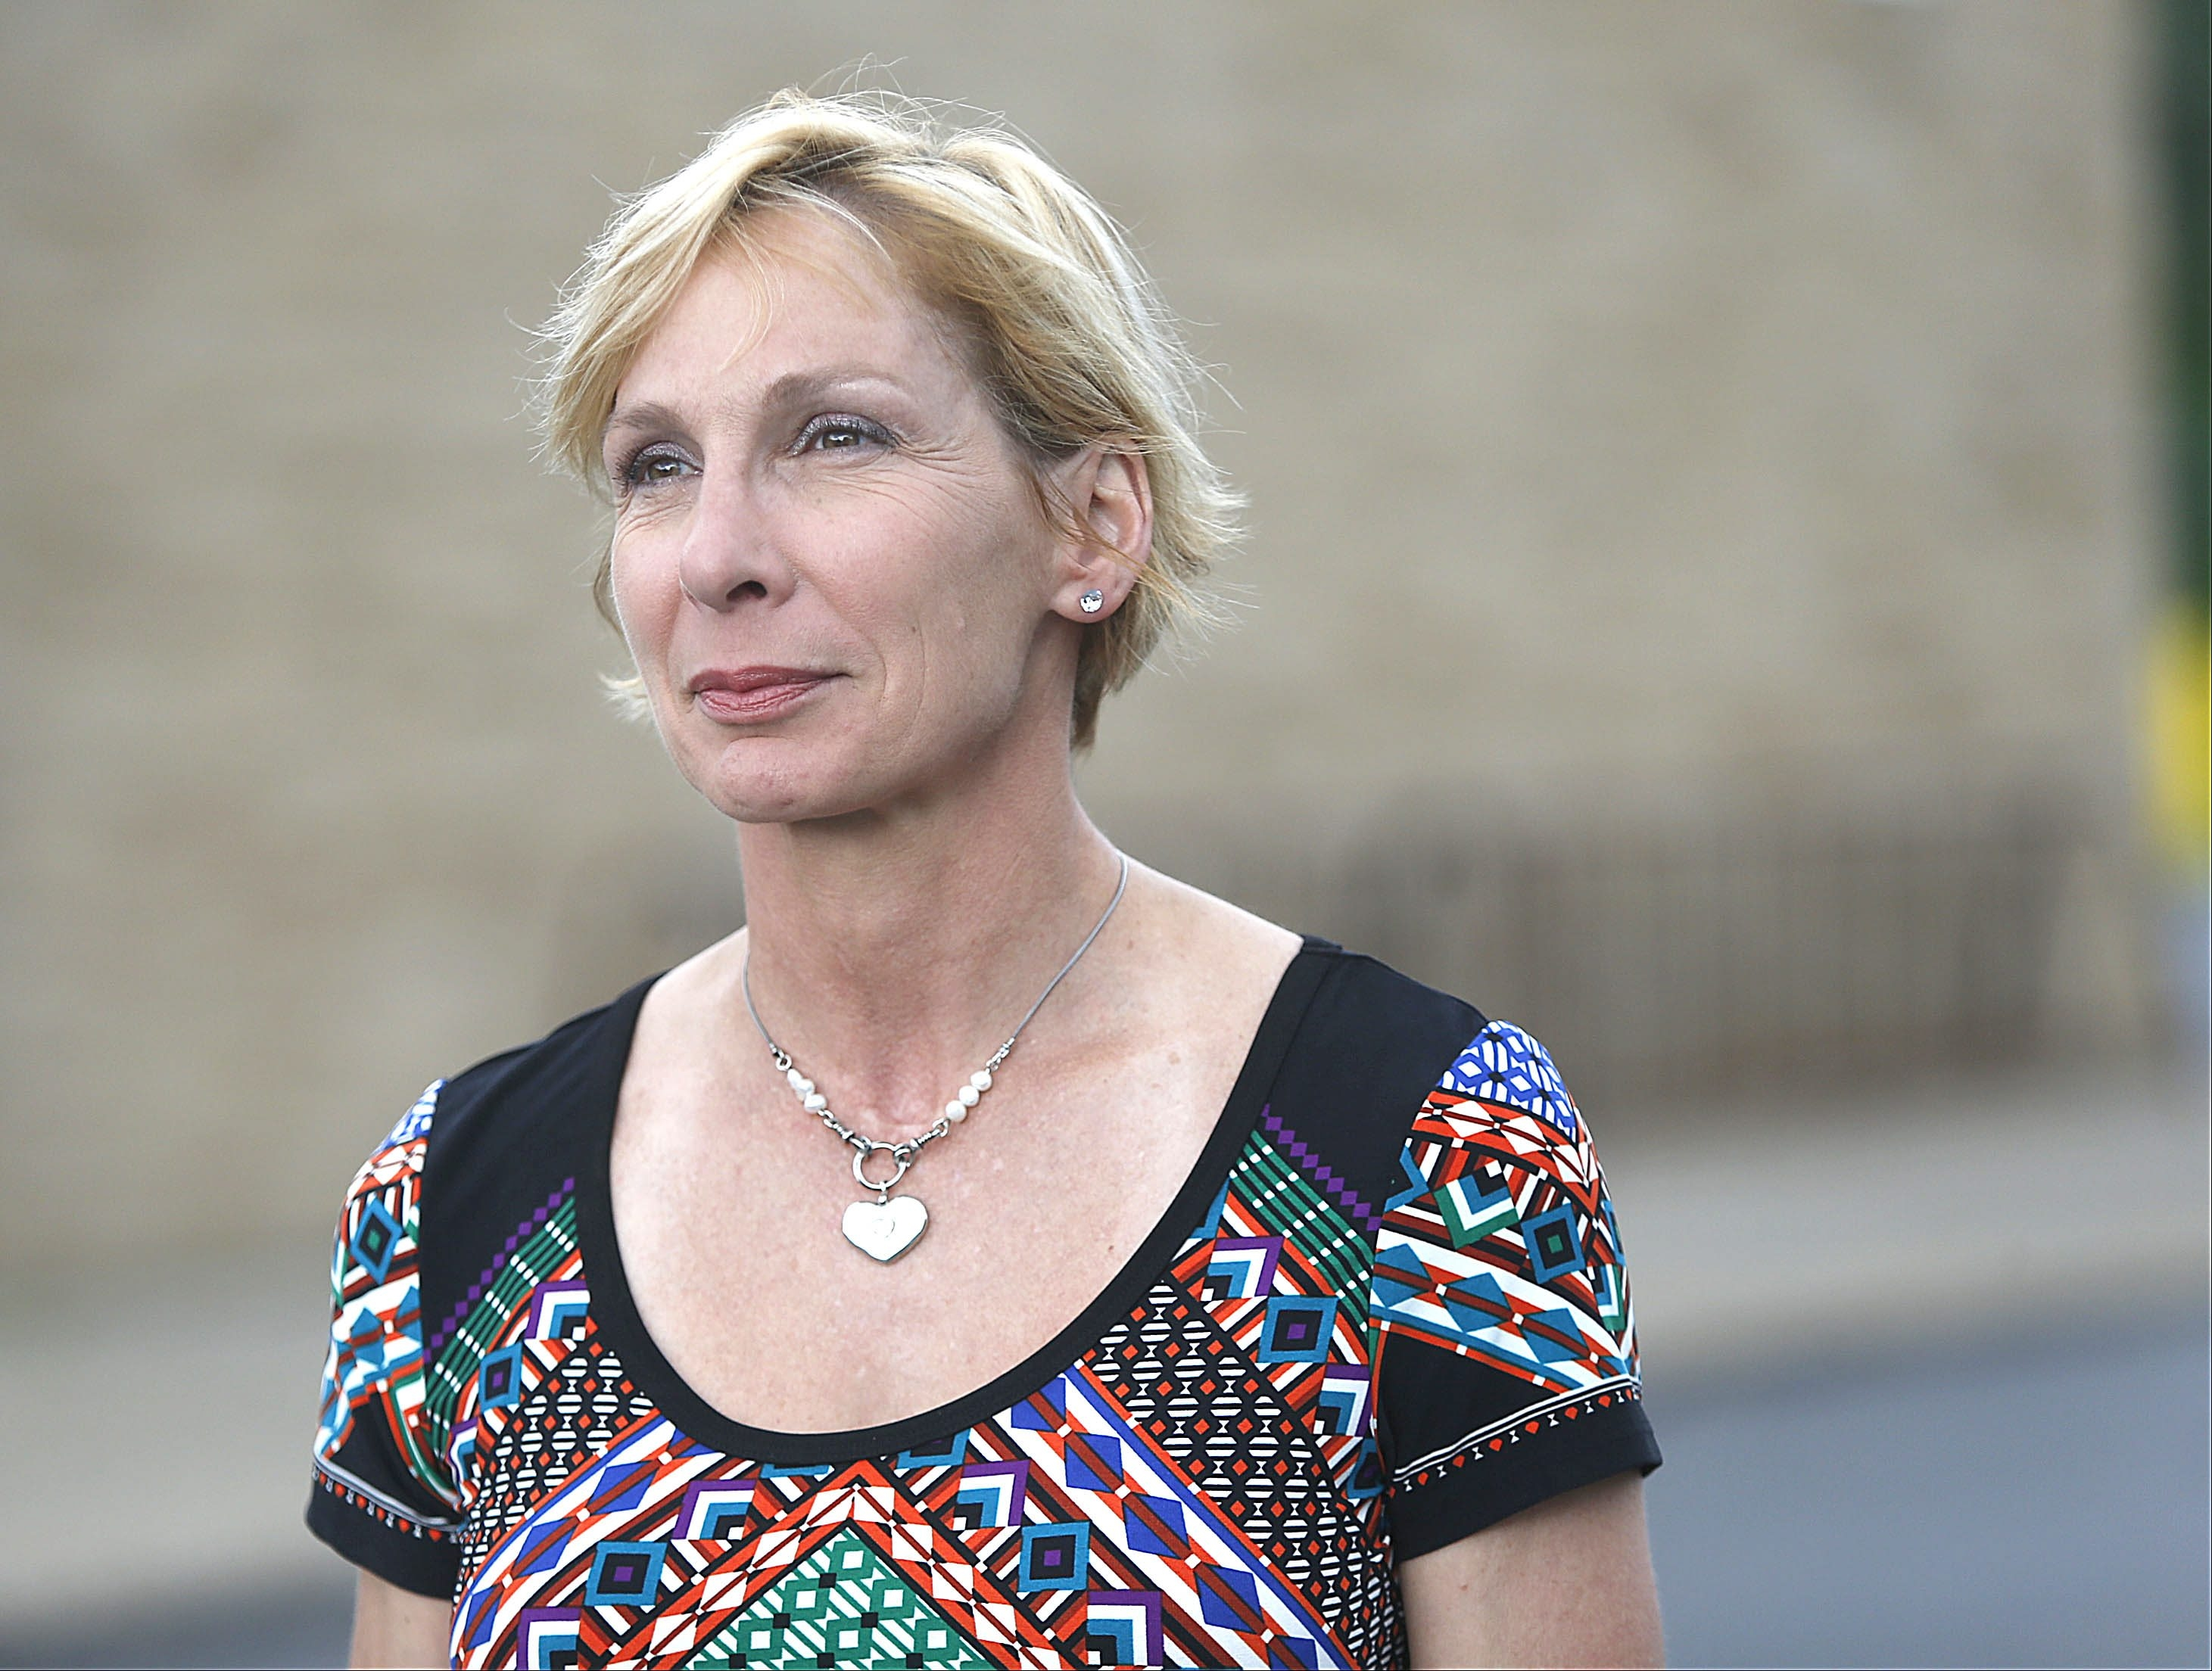 Catherine Schrauth Forcucci says she would deal with people differently if given the chance.